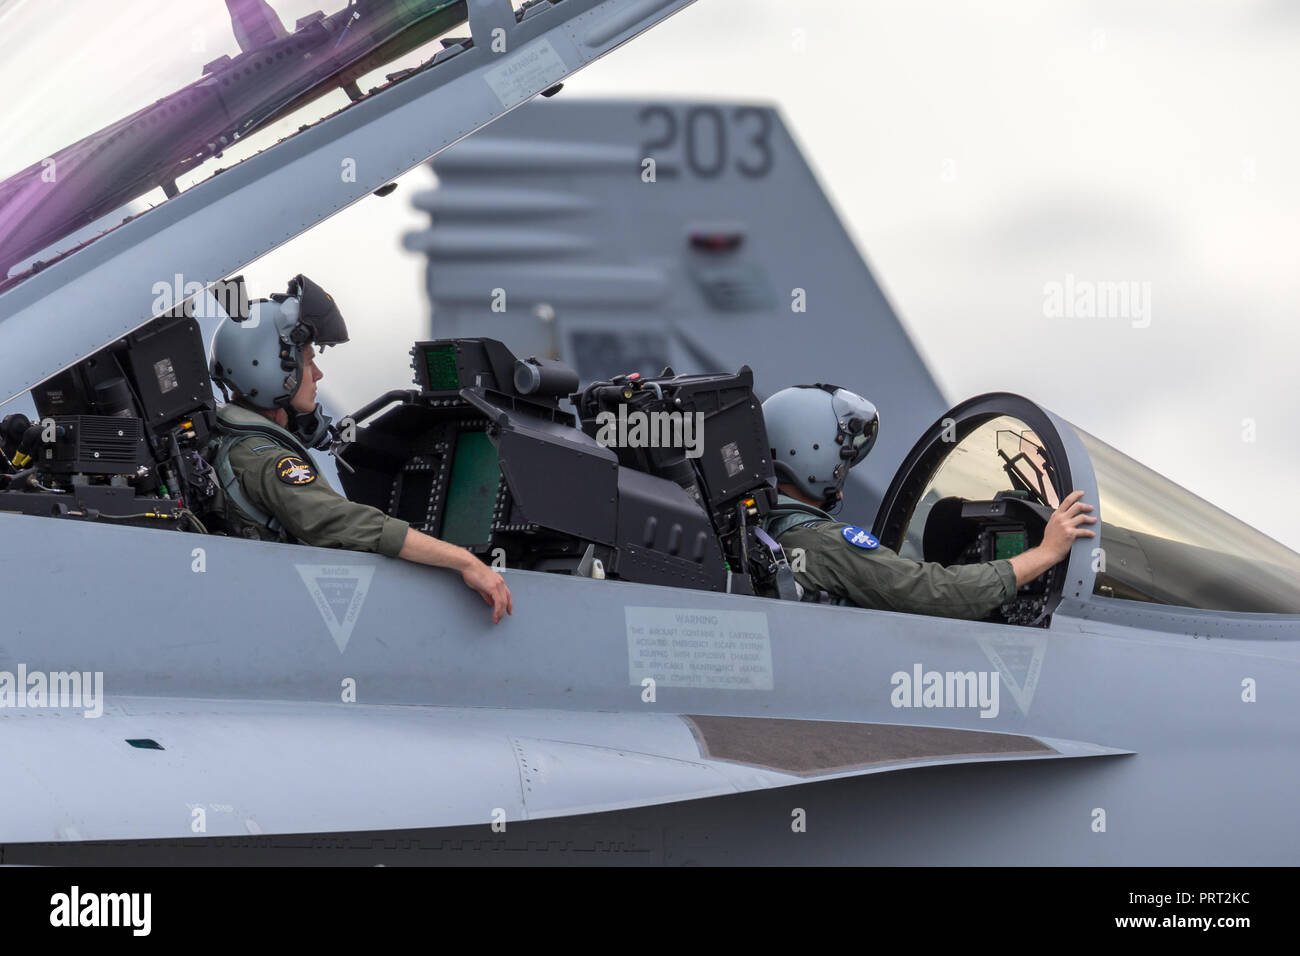 Royal Australian Air Force (RAAF) Aircrew in a Boeing F/A-18F Super Hornet multirole fighter aircraft. - Stock Image